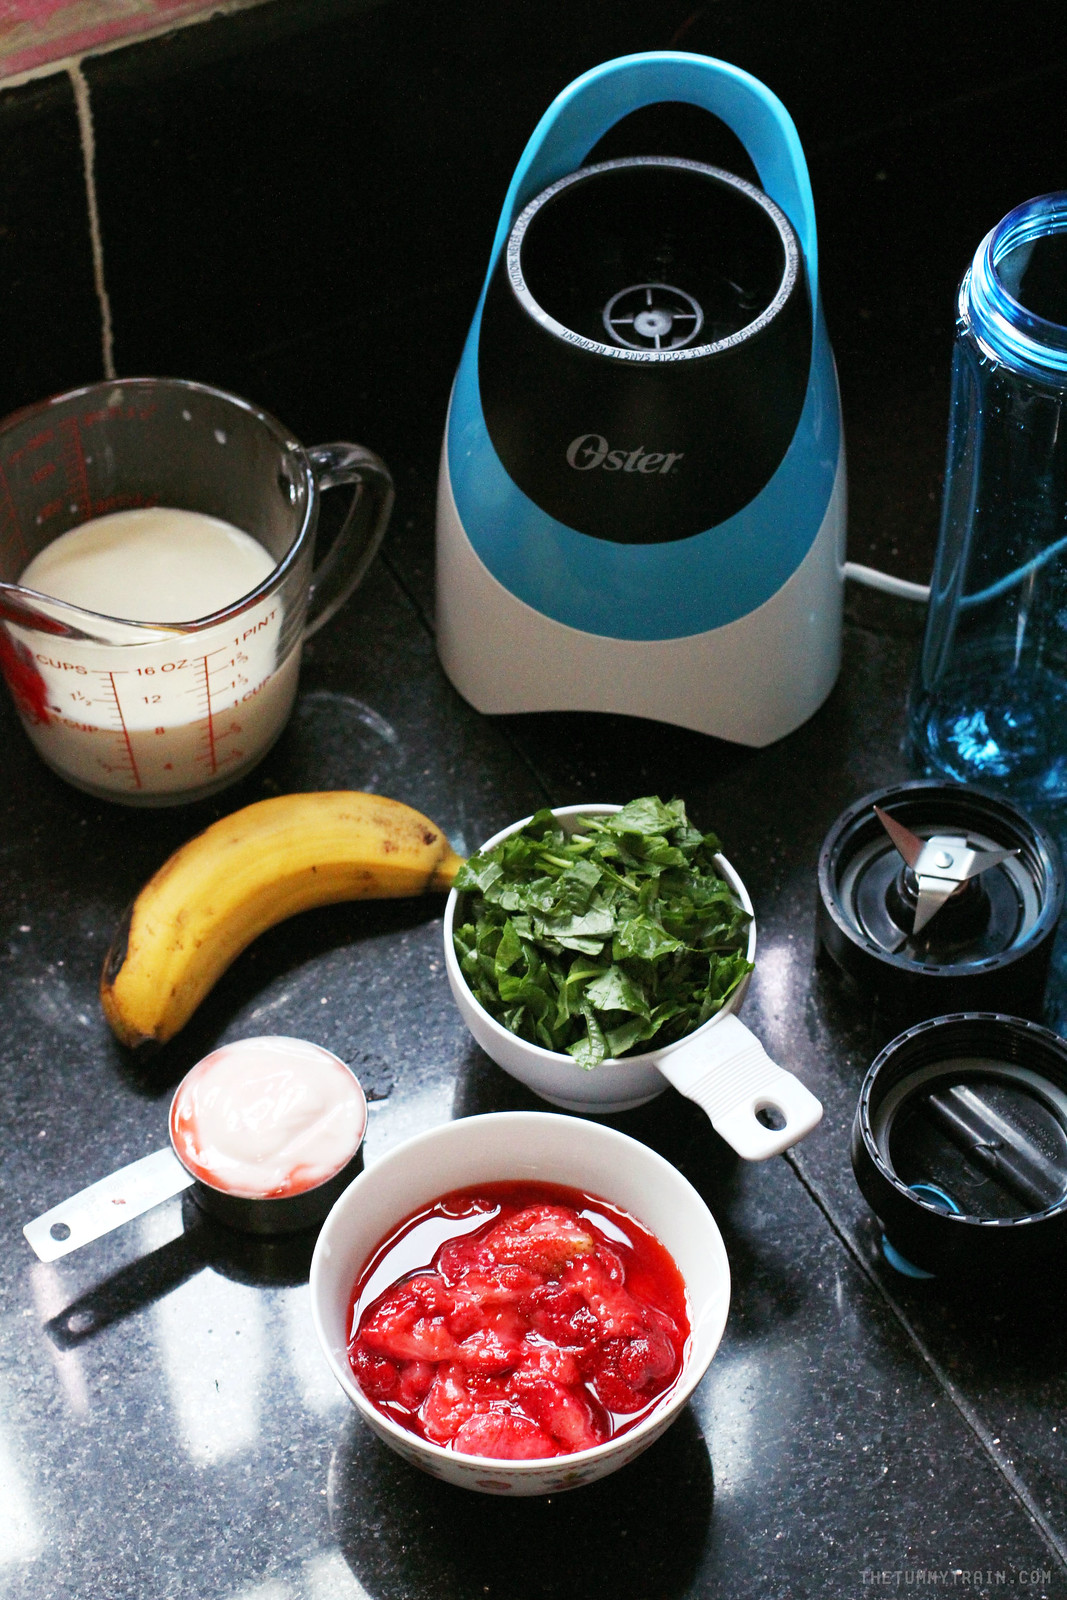 27020335050 634f8617ff h - A review on the Oster MyBlend Personal Blender + Giveaway!